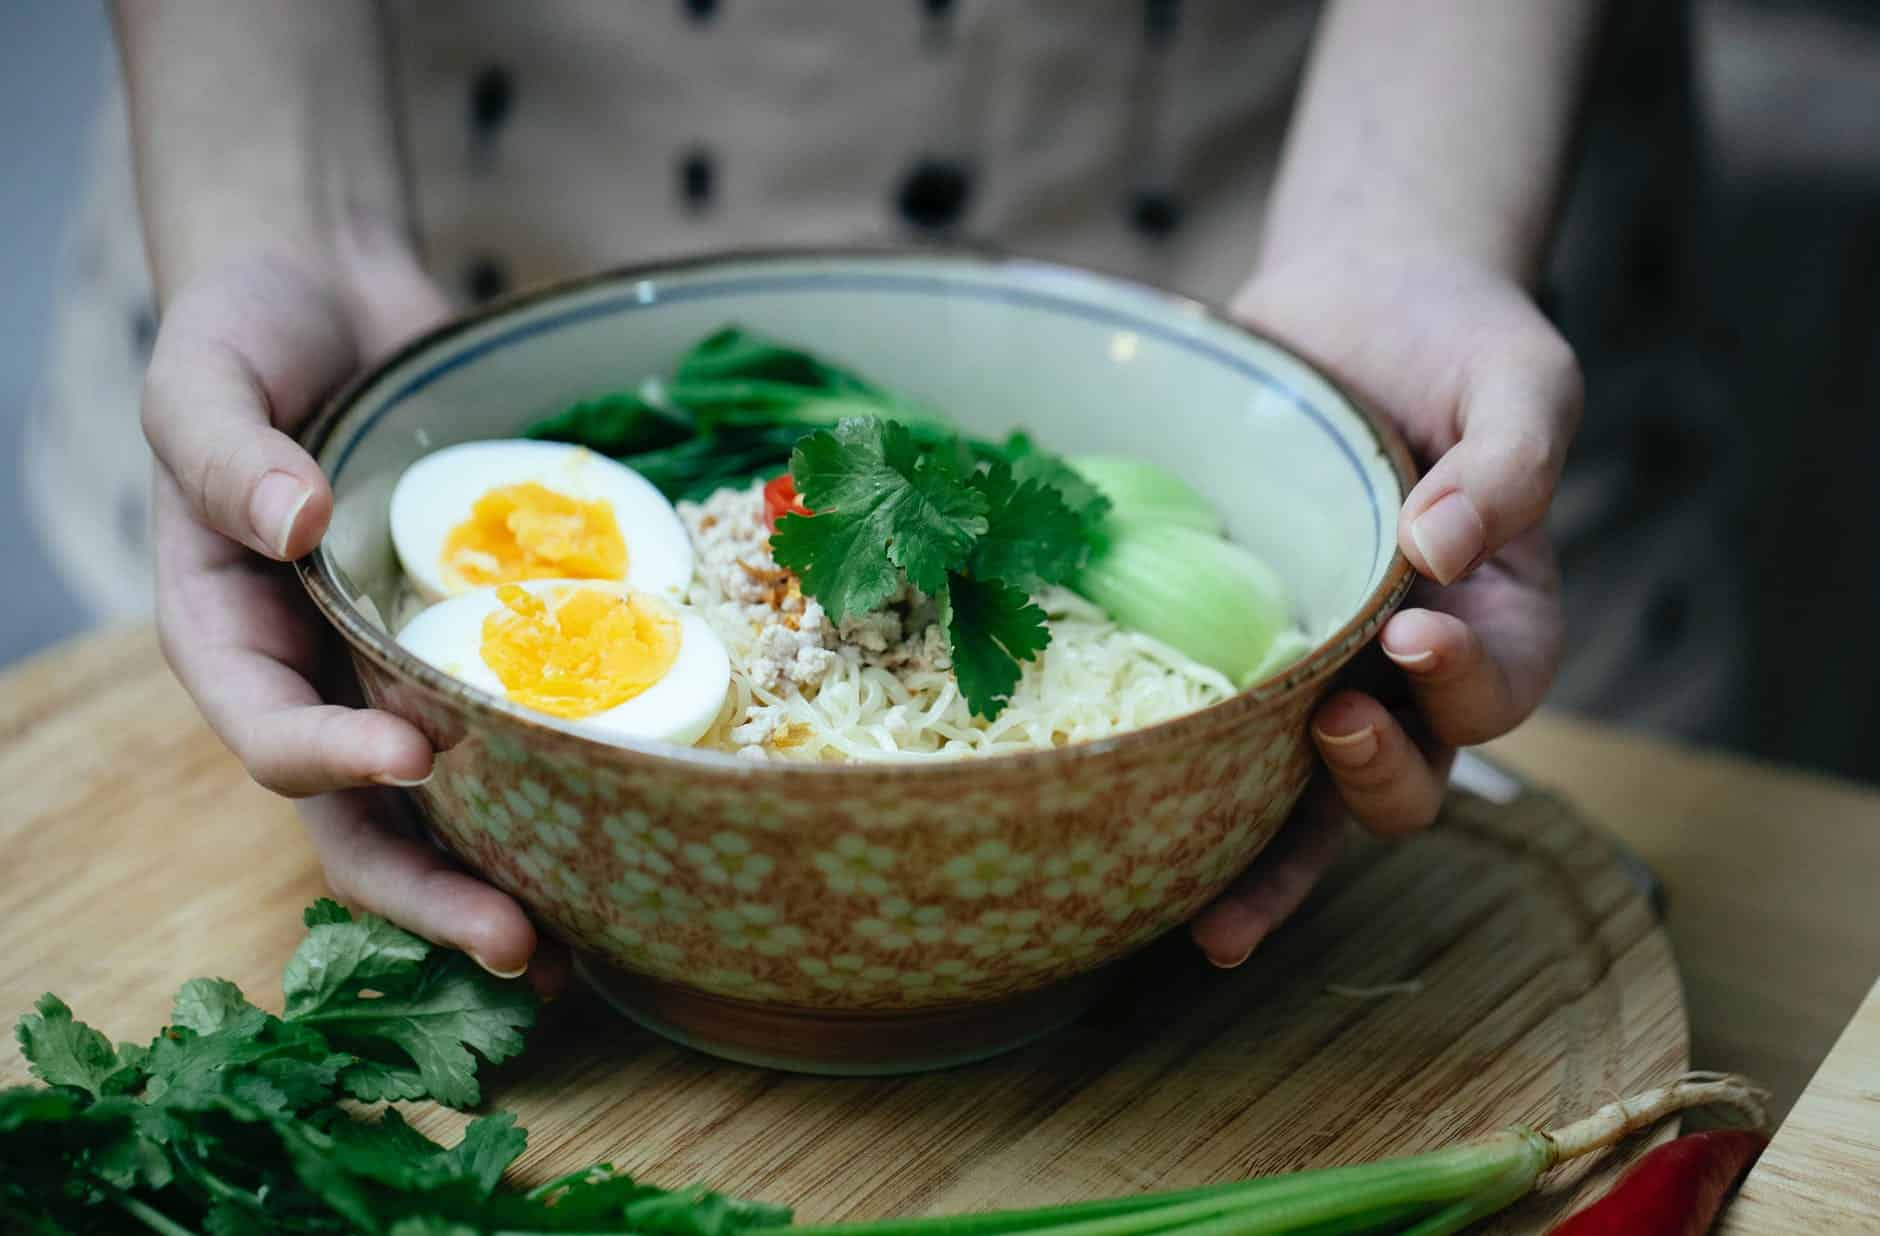 crop unrecognizable woman touching bowl with traditional ramen soup